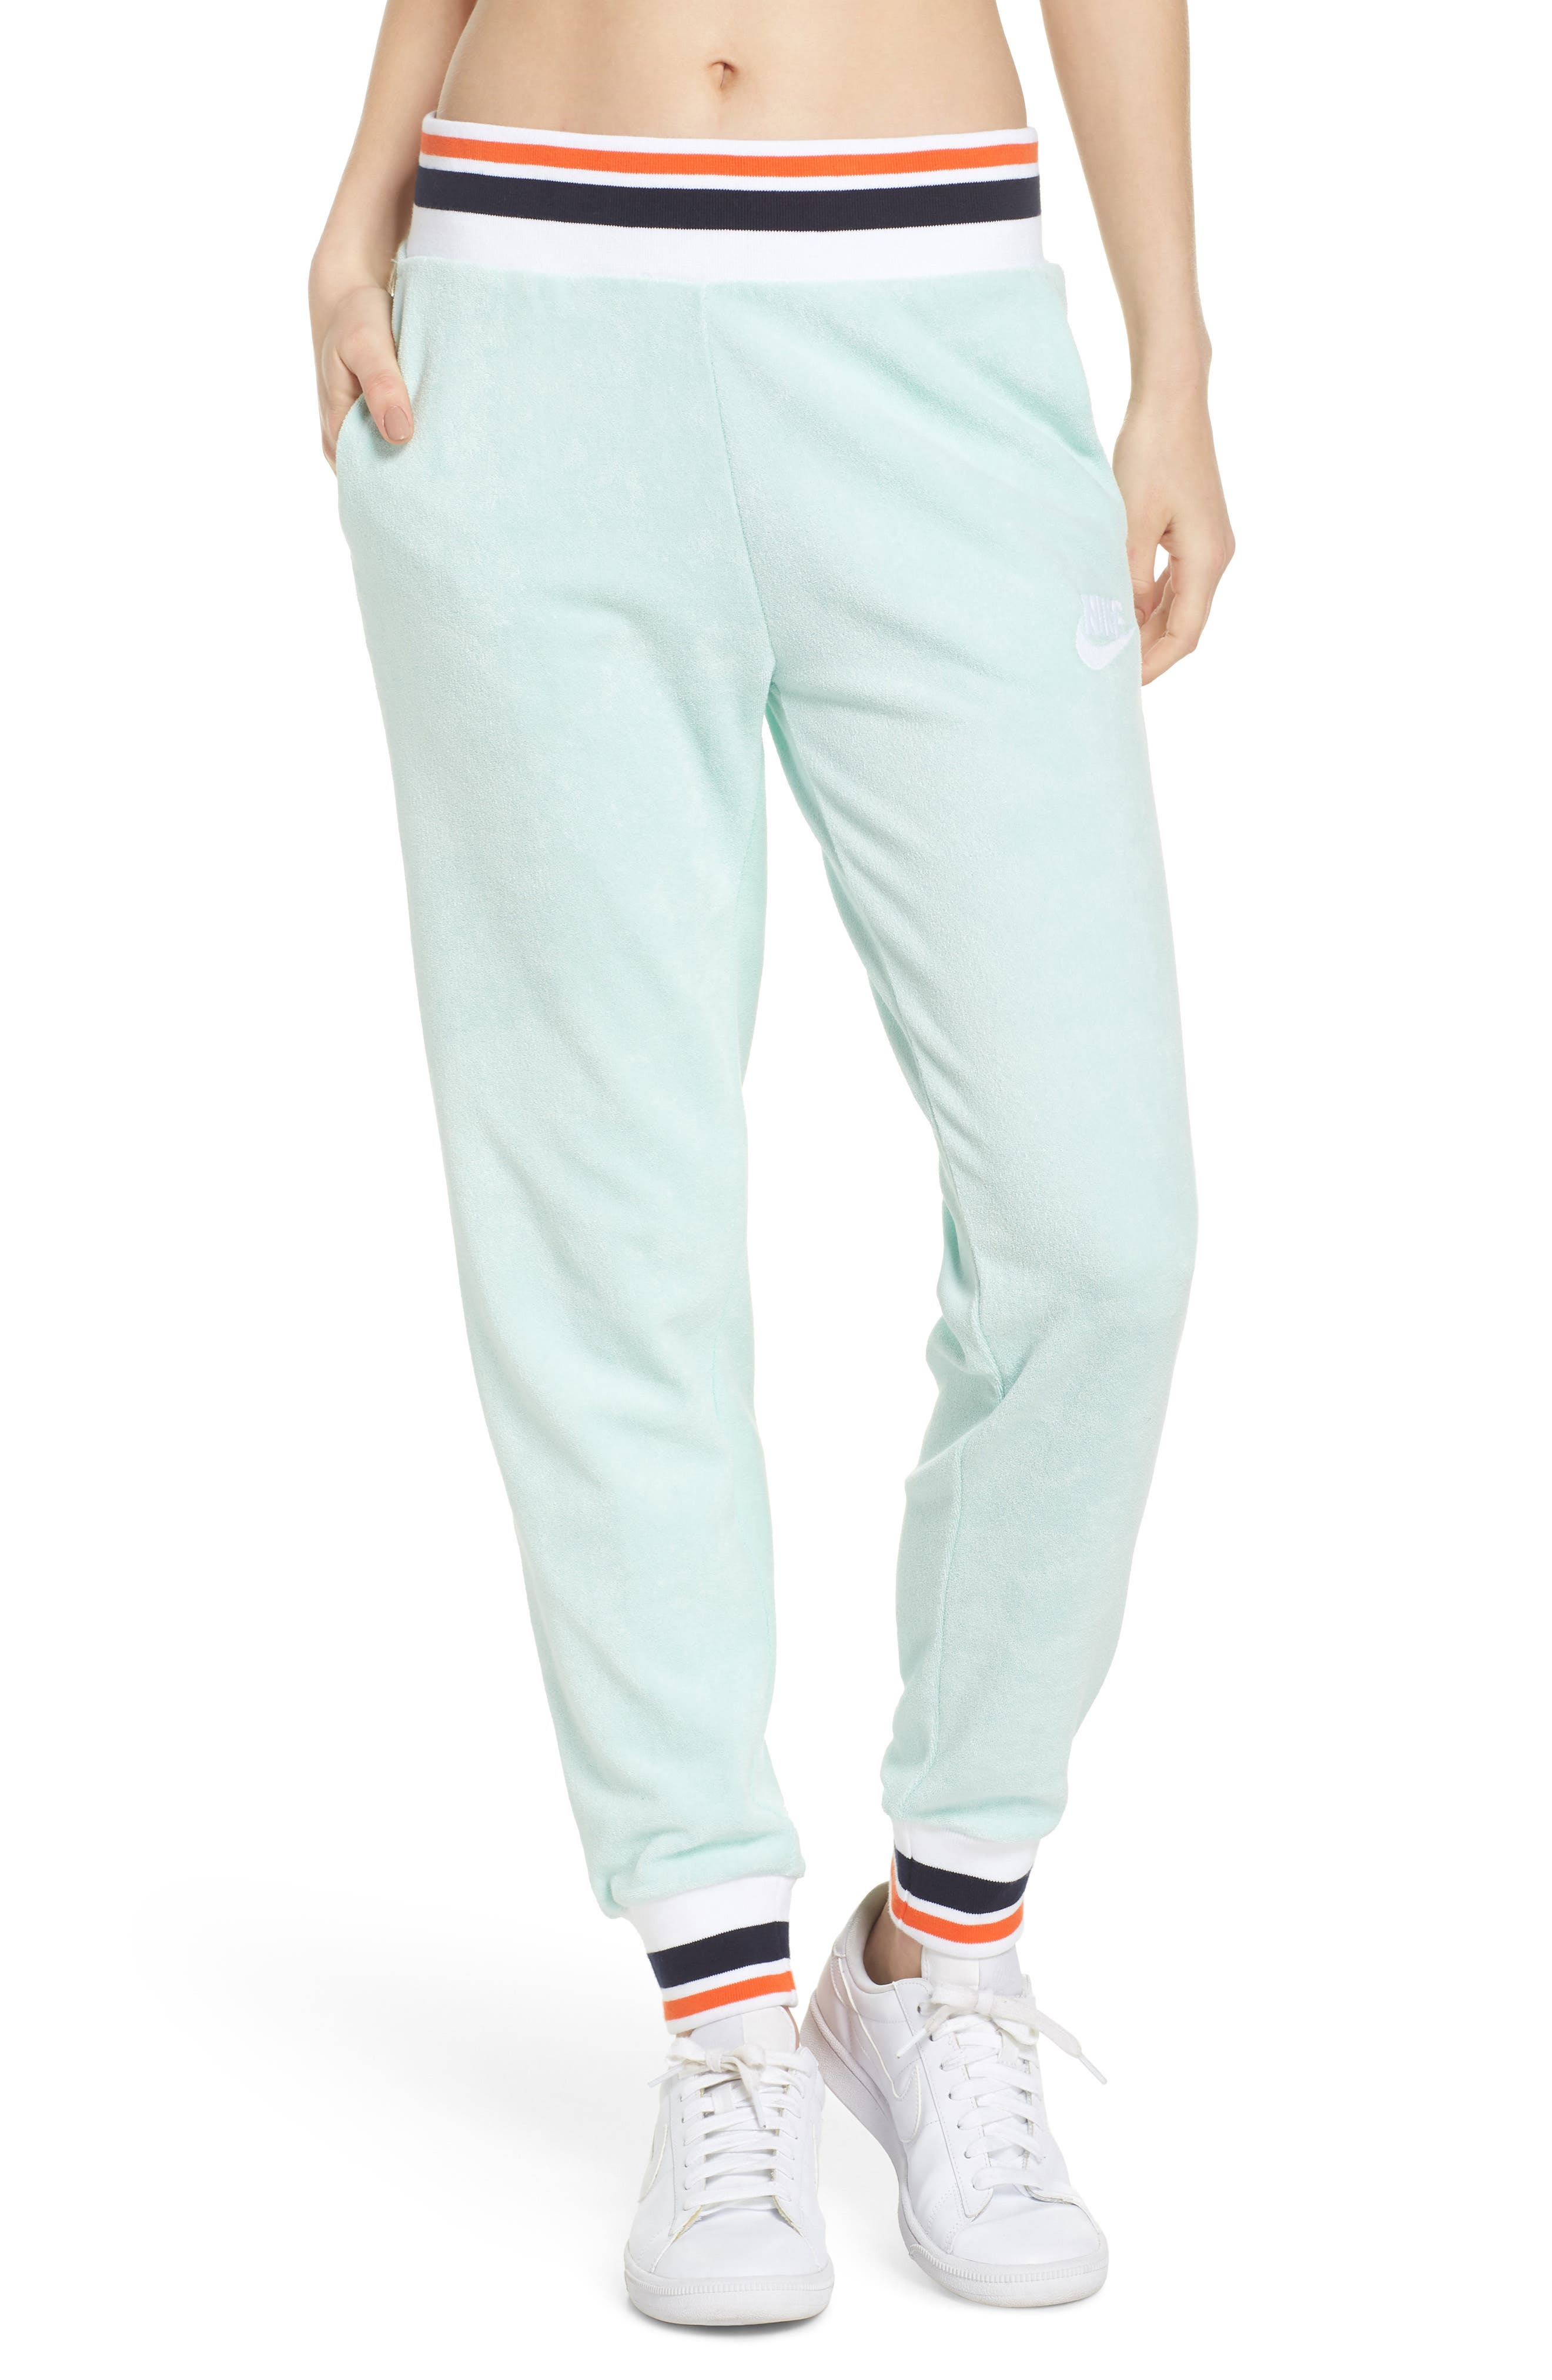 Sportswear French Terry Pants,                         Main,                         color, Igloo/ White